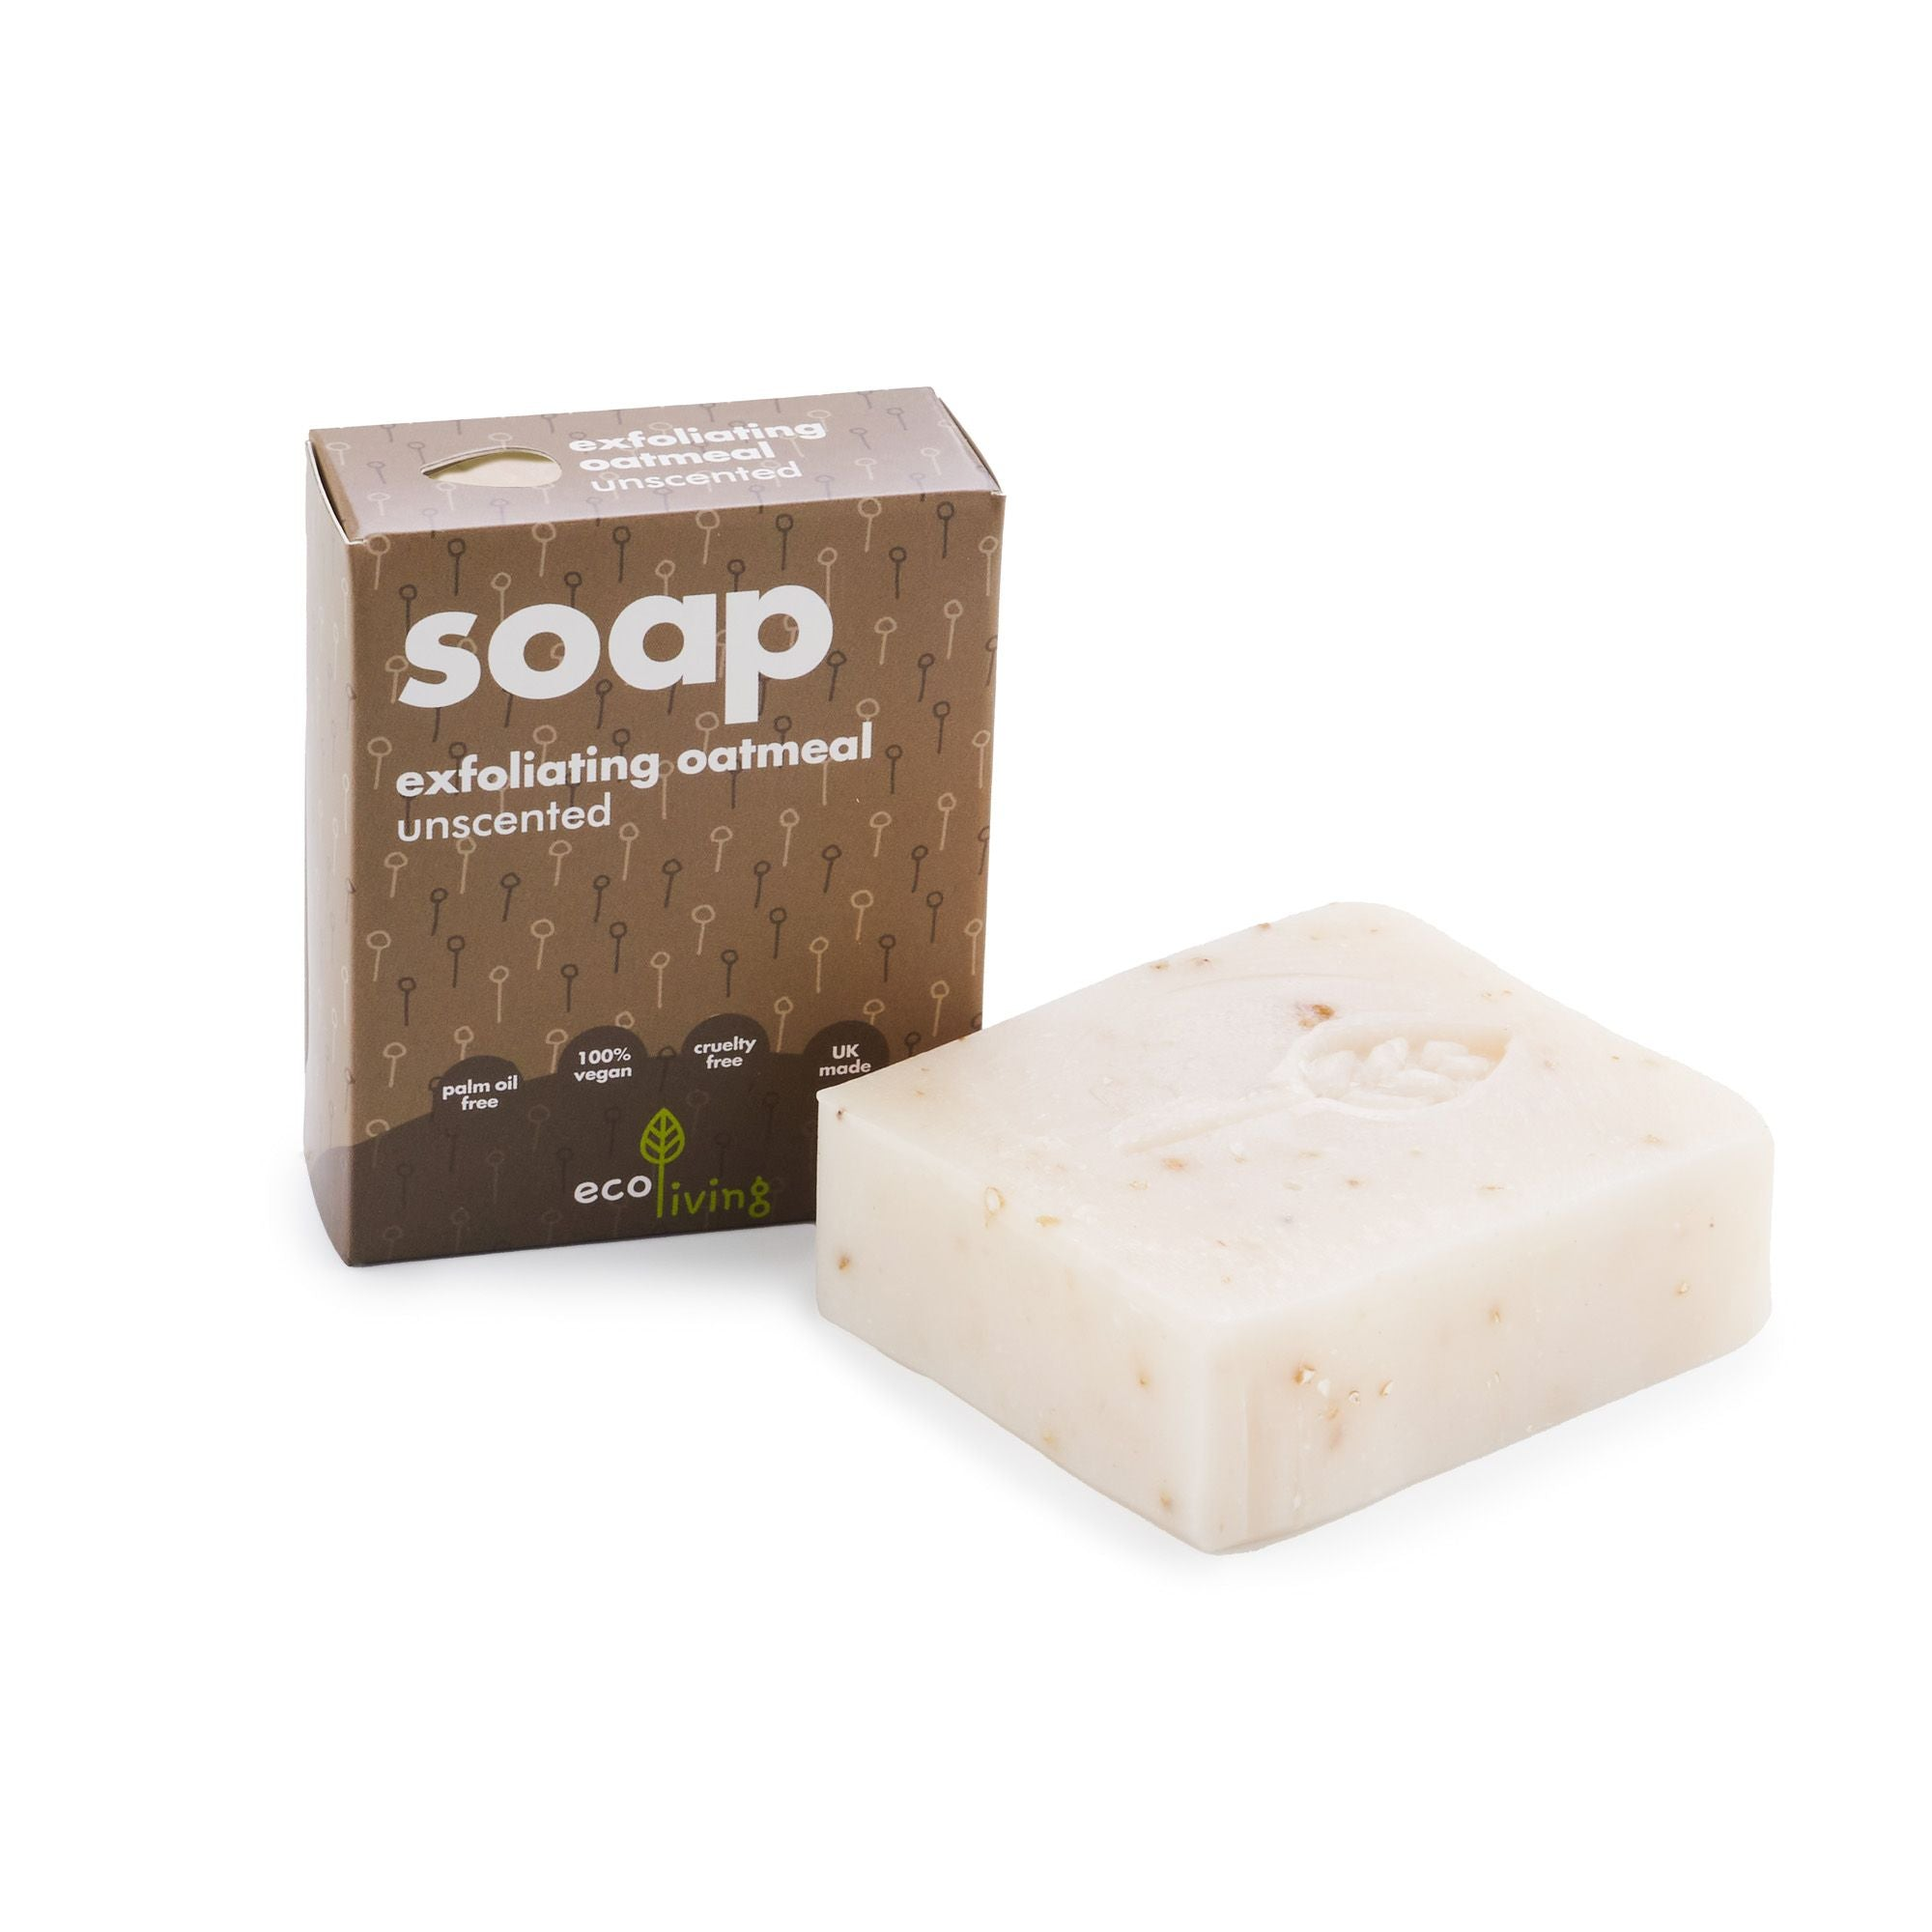 Unscented Exfoliating Oatmeal Handmade Soap (100g) - Beautykind